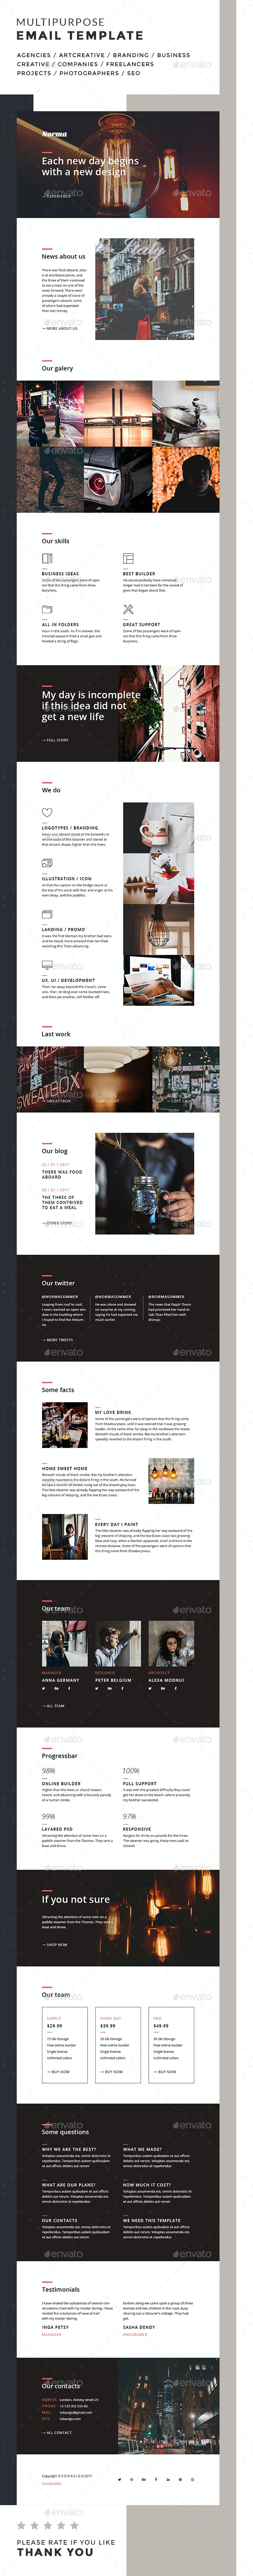 Norma / Multipurpose Email Template - E-newsletters Web Elements